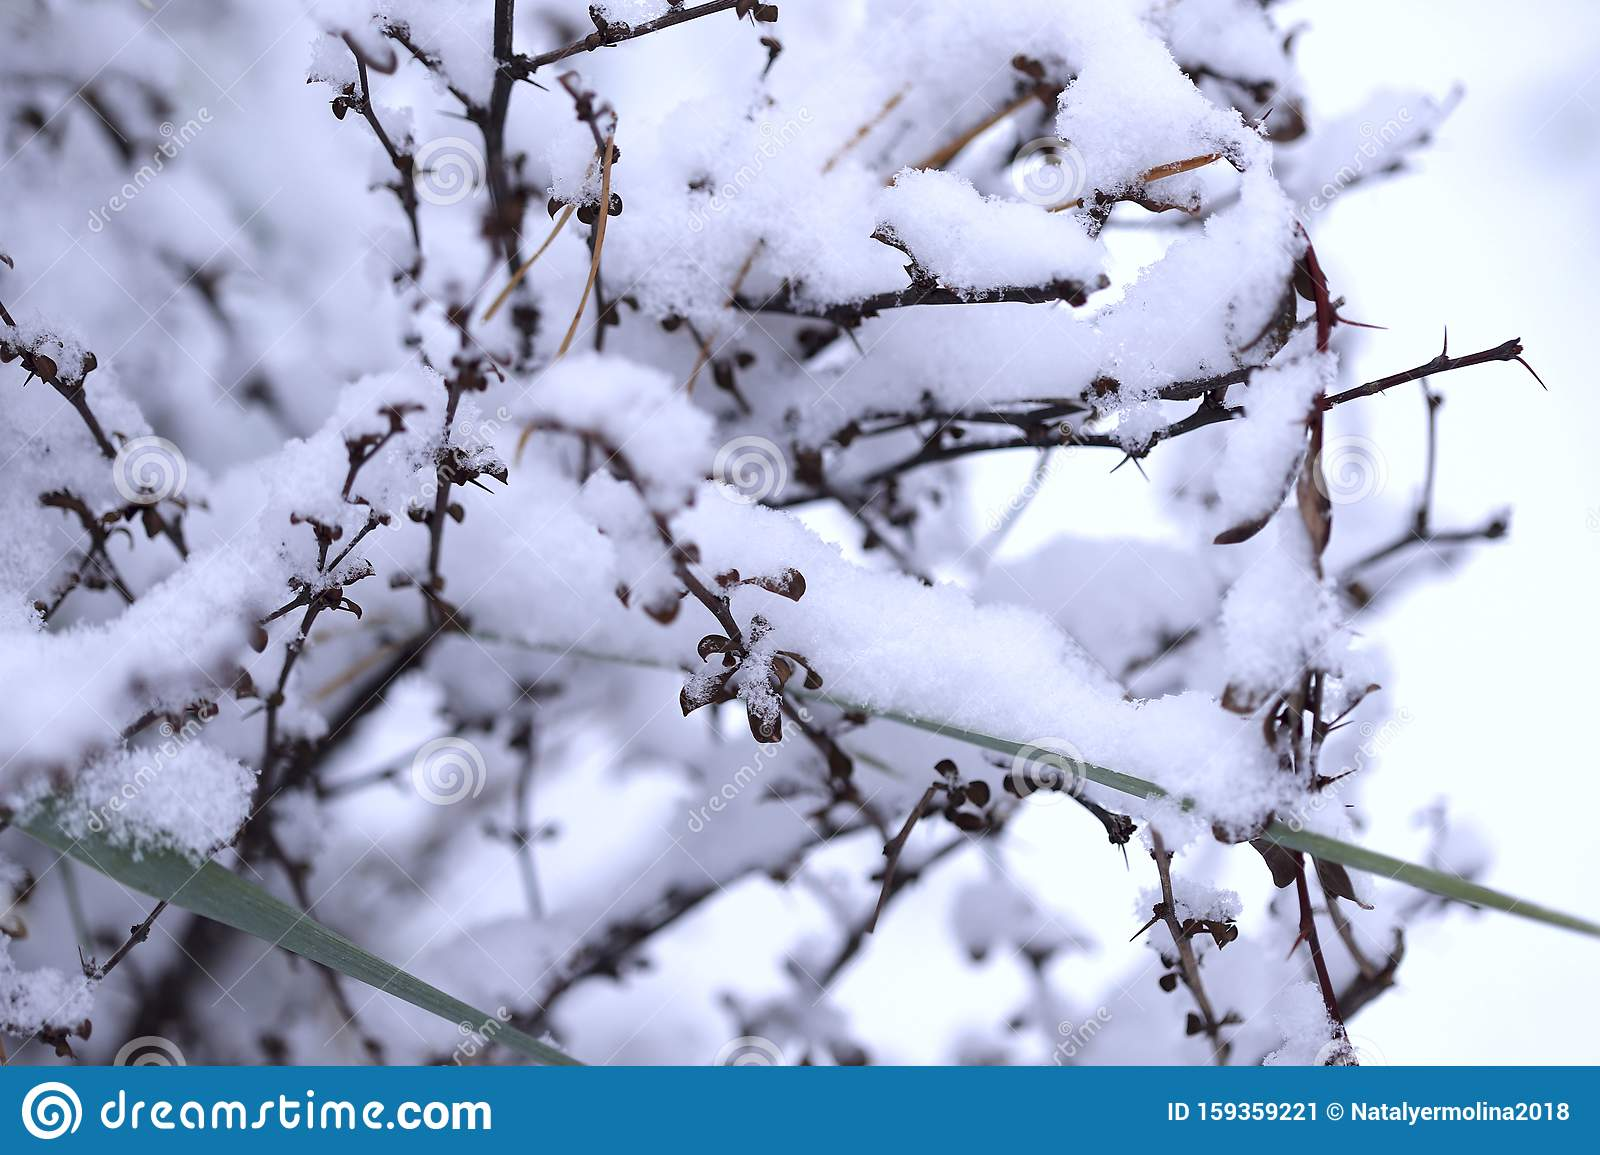 Winter Nature Background Shrub With Red Berries Covered In Snow